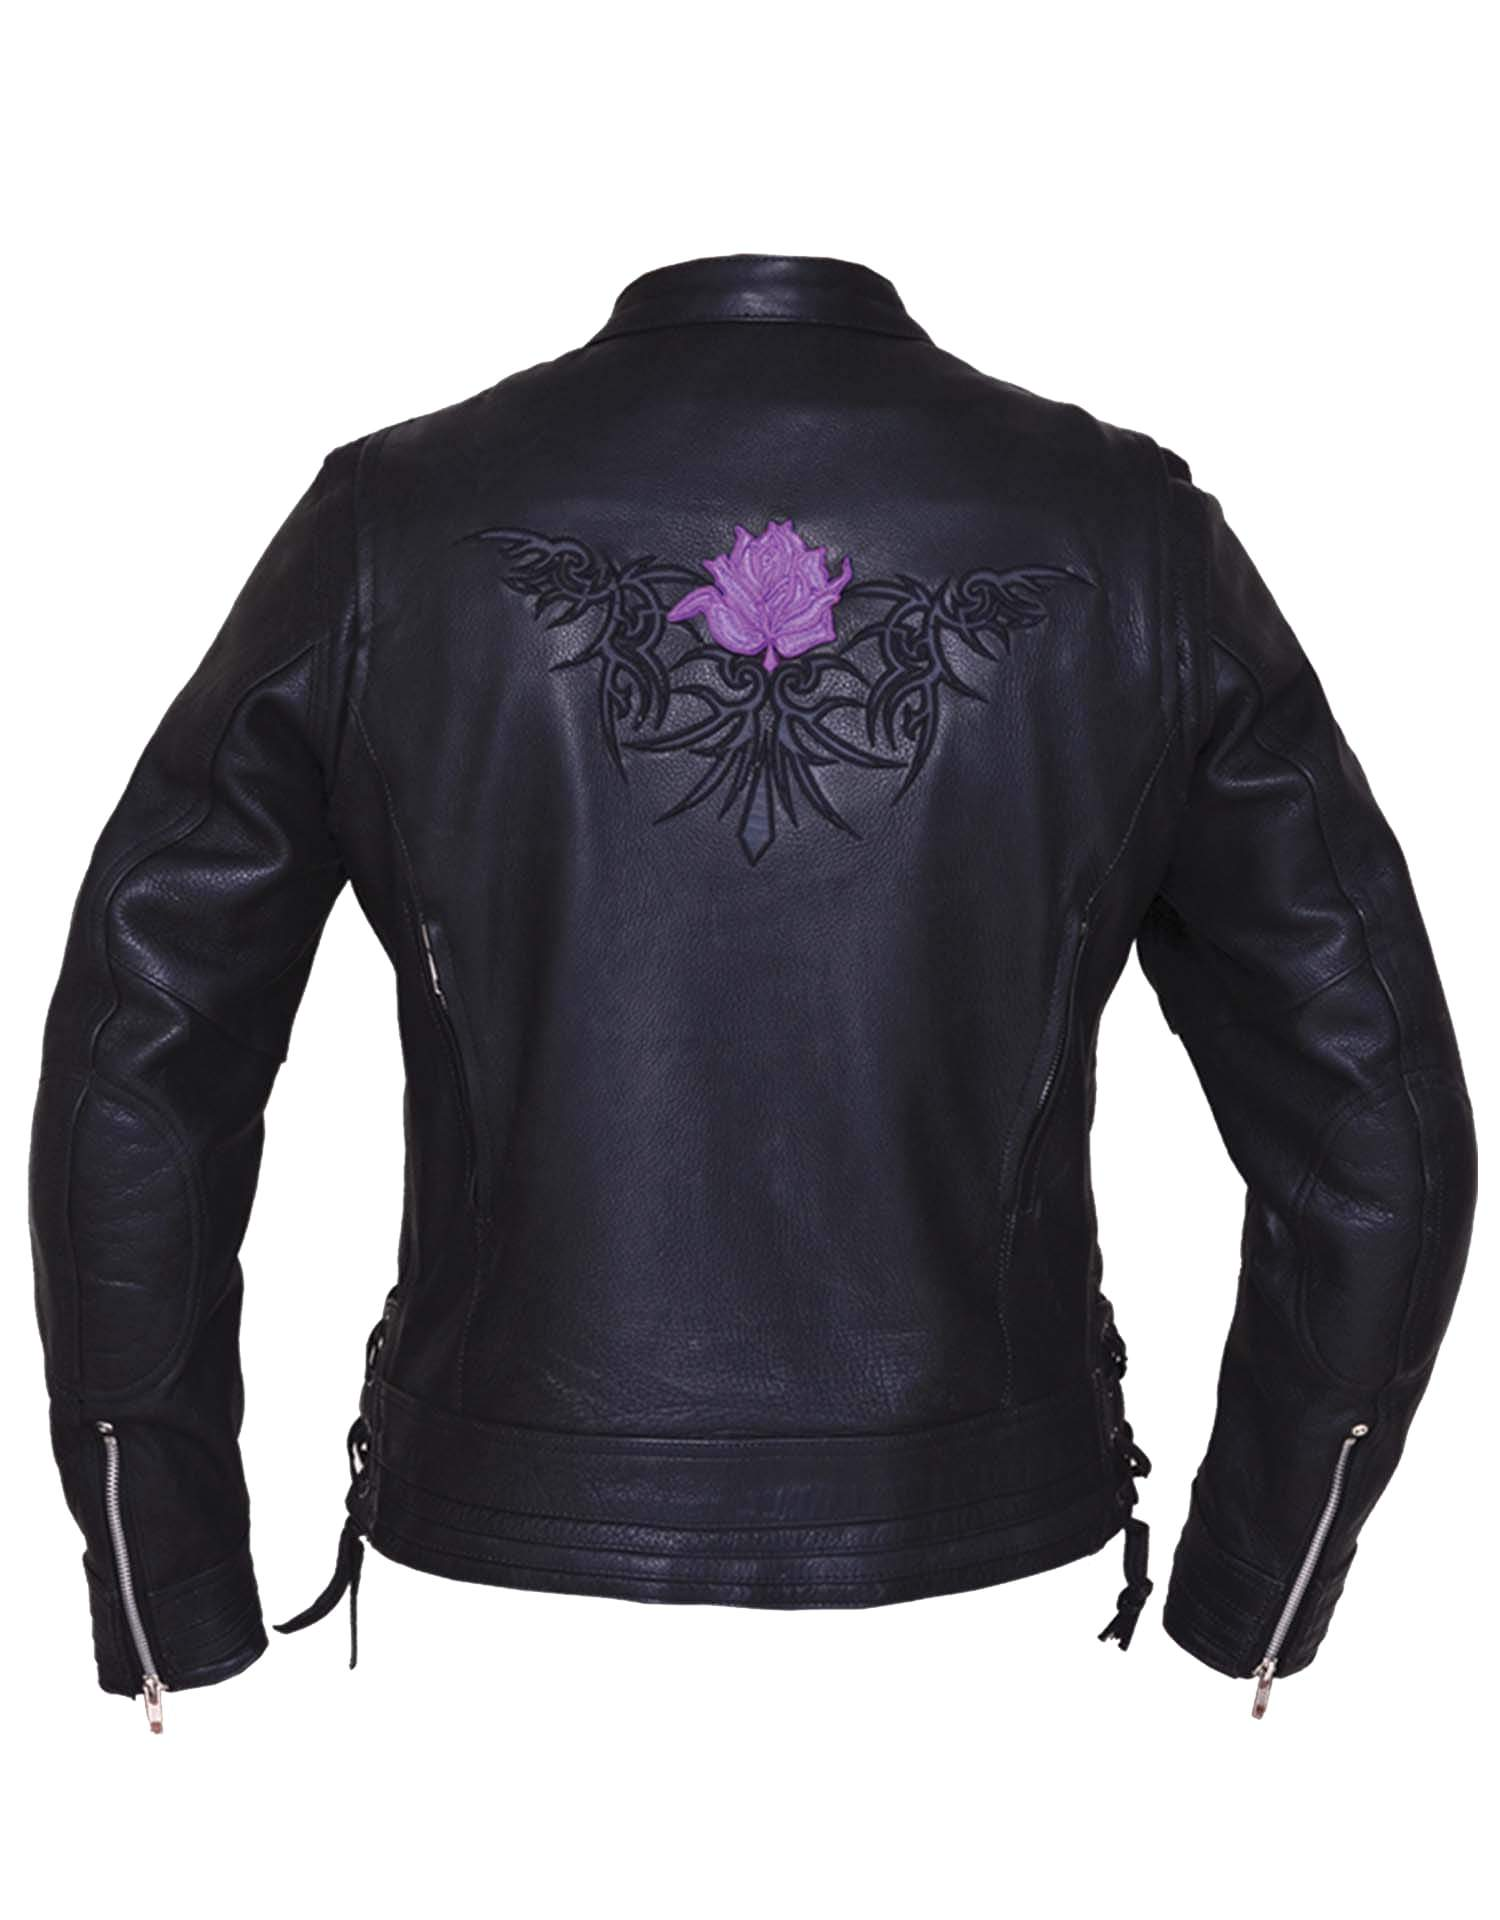 UNIK Ladies Premium Leather Motorcycle Jacket 2